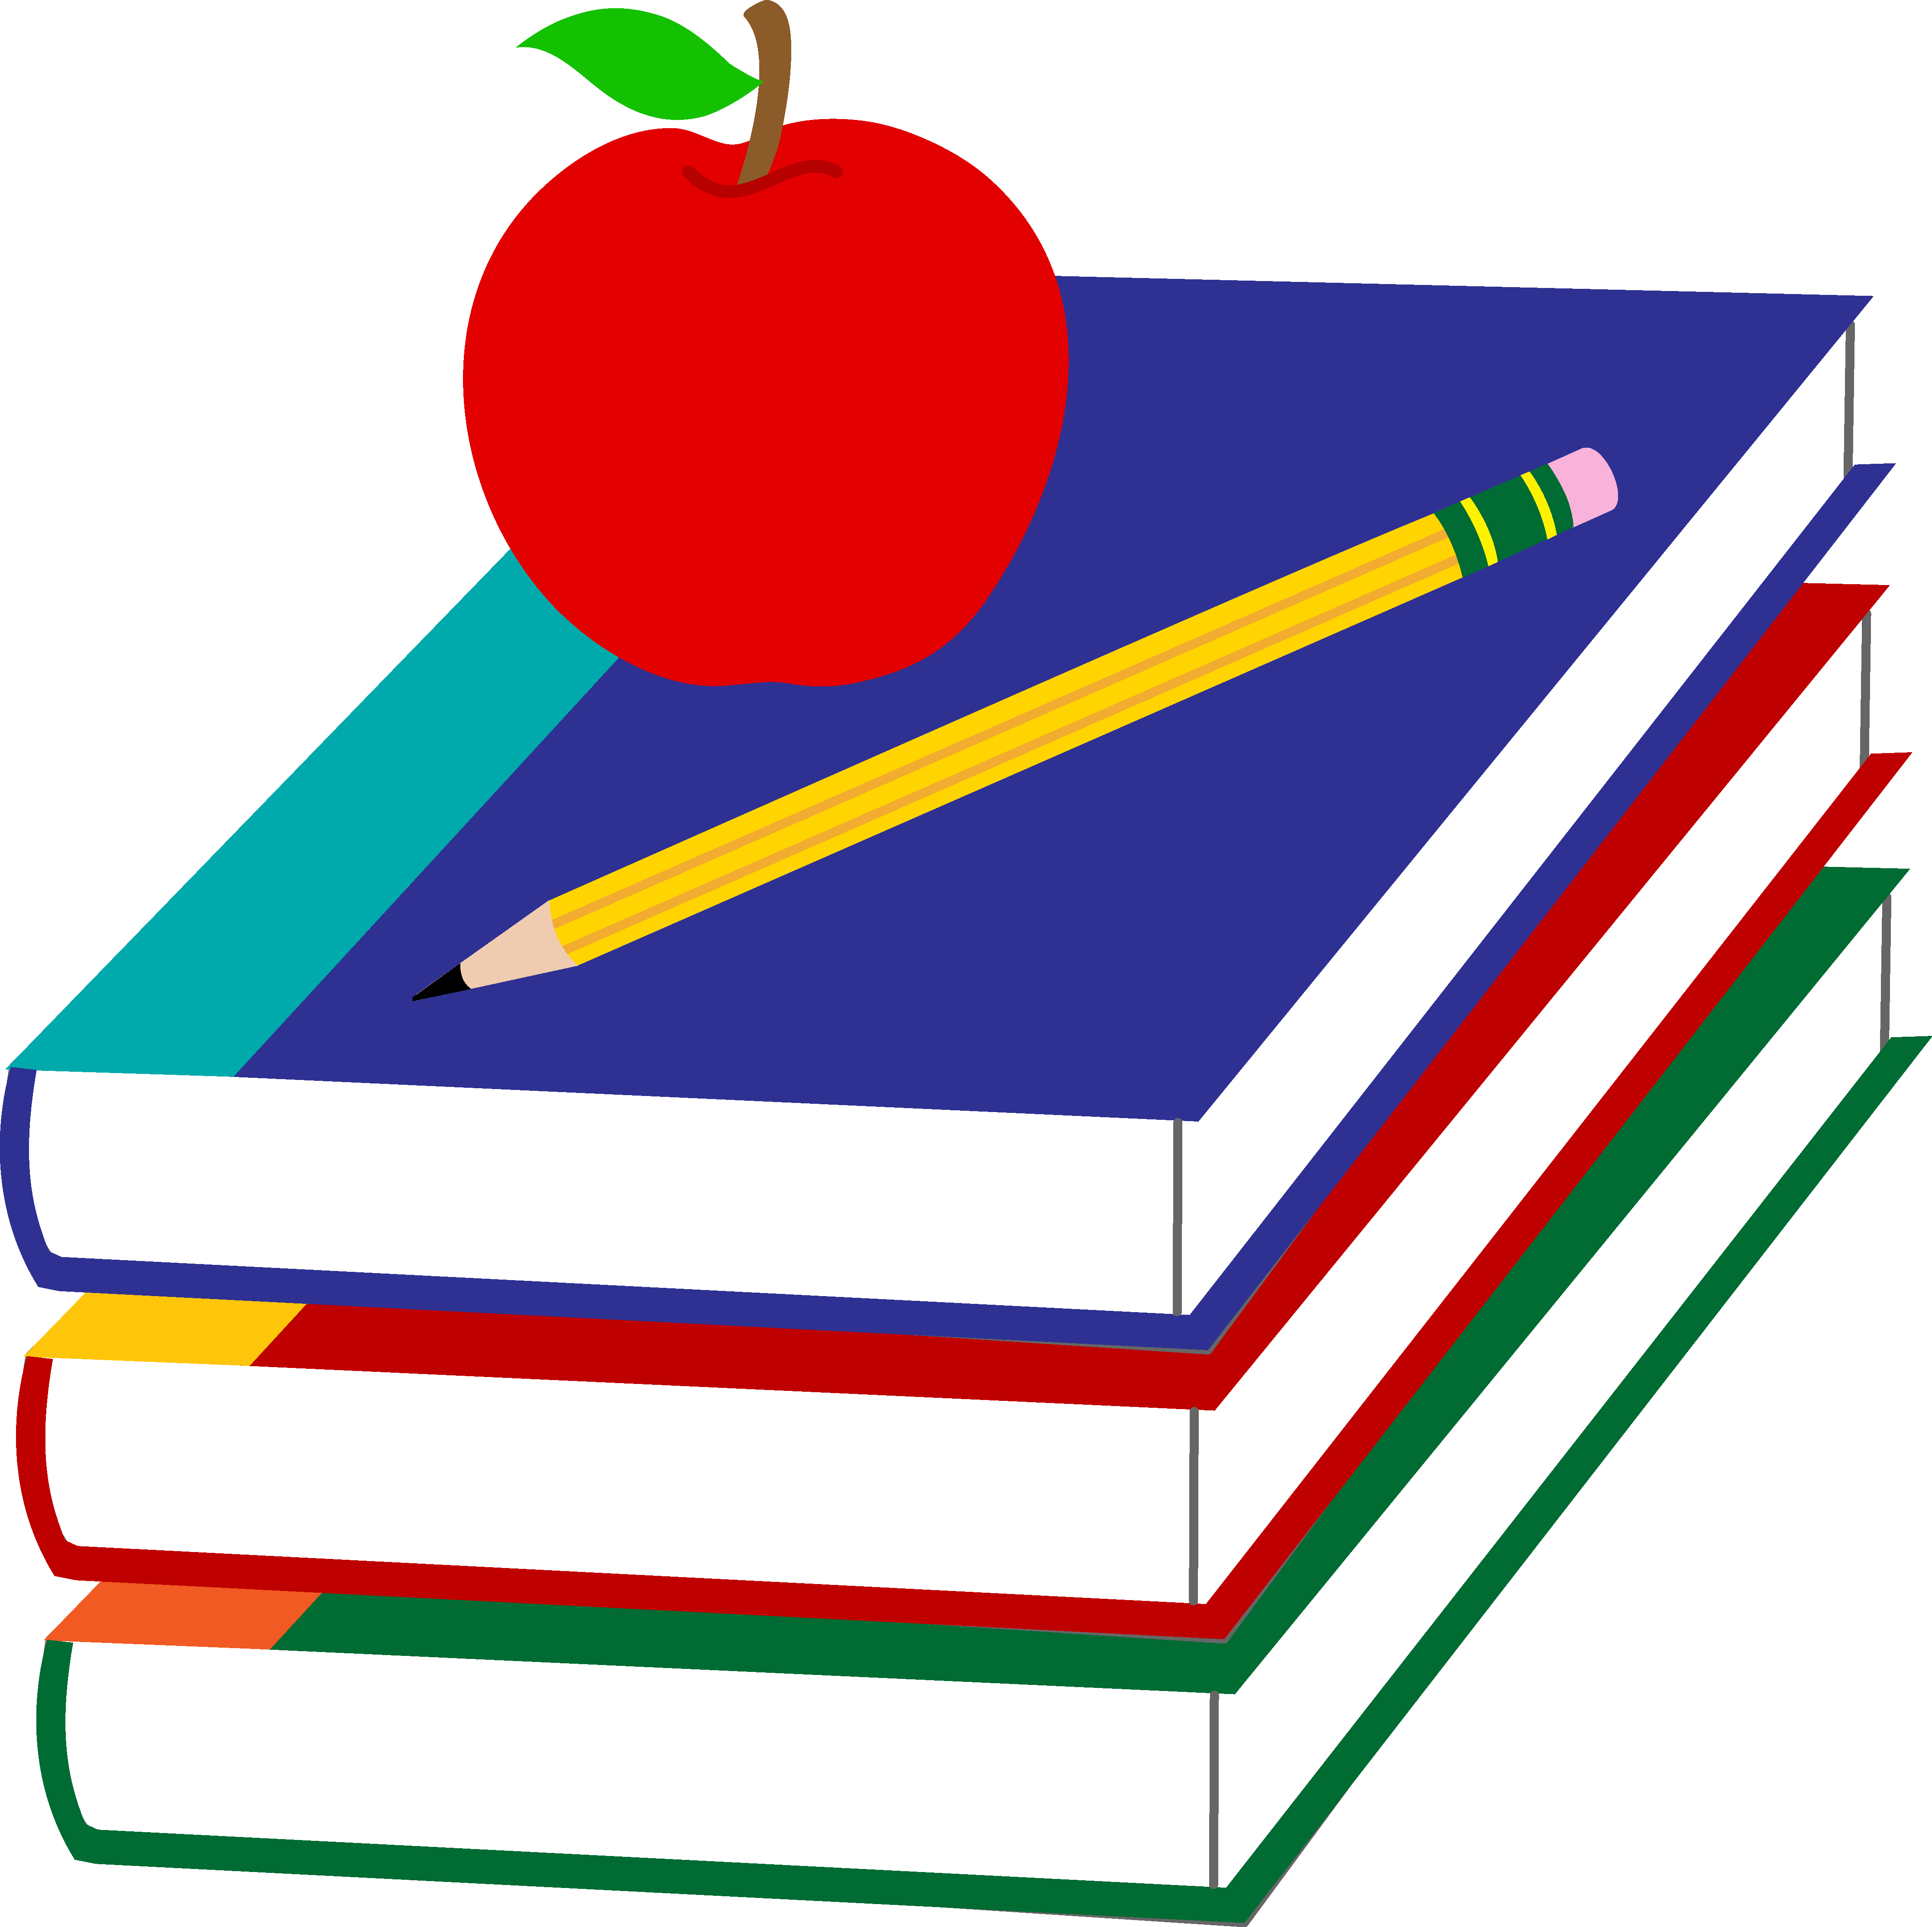 Apple and book clipart